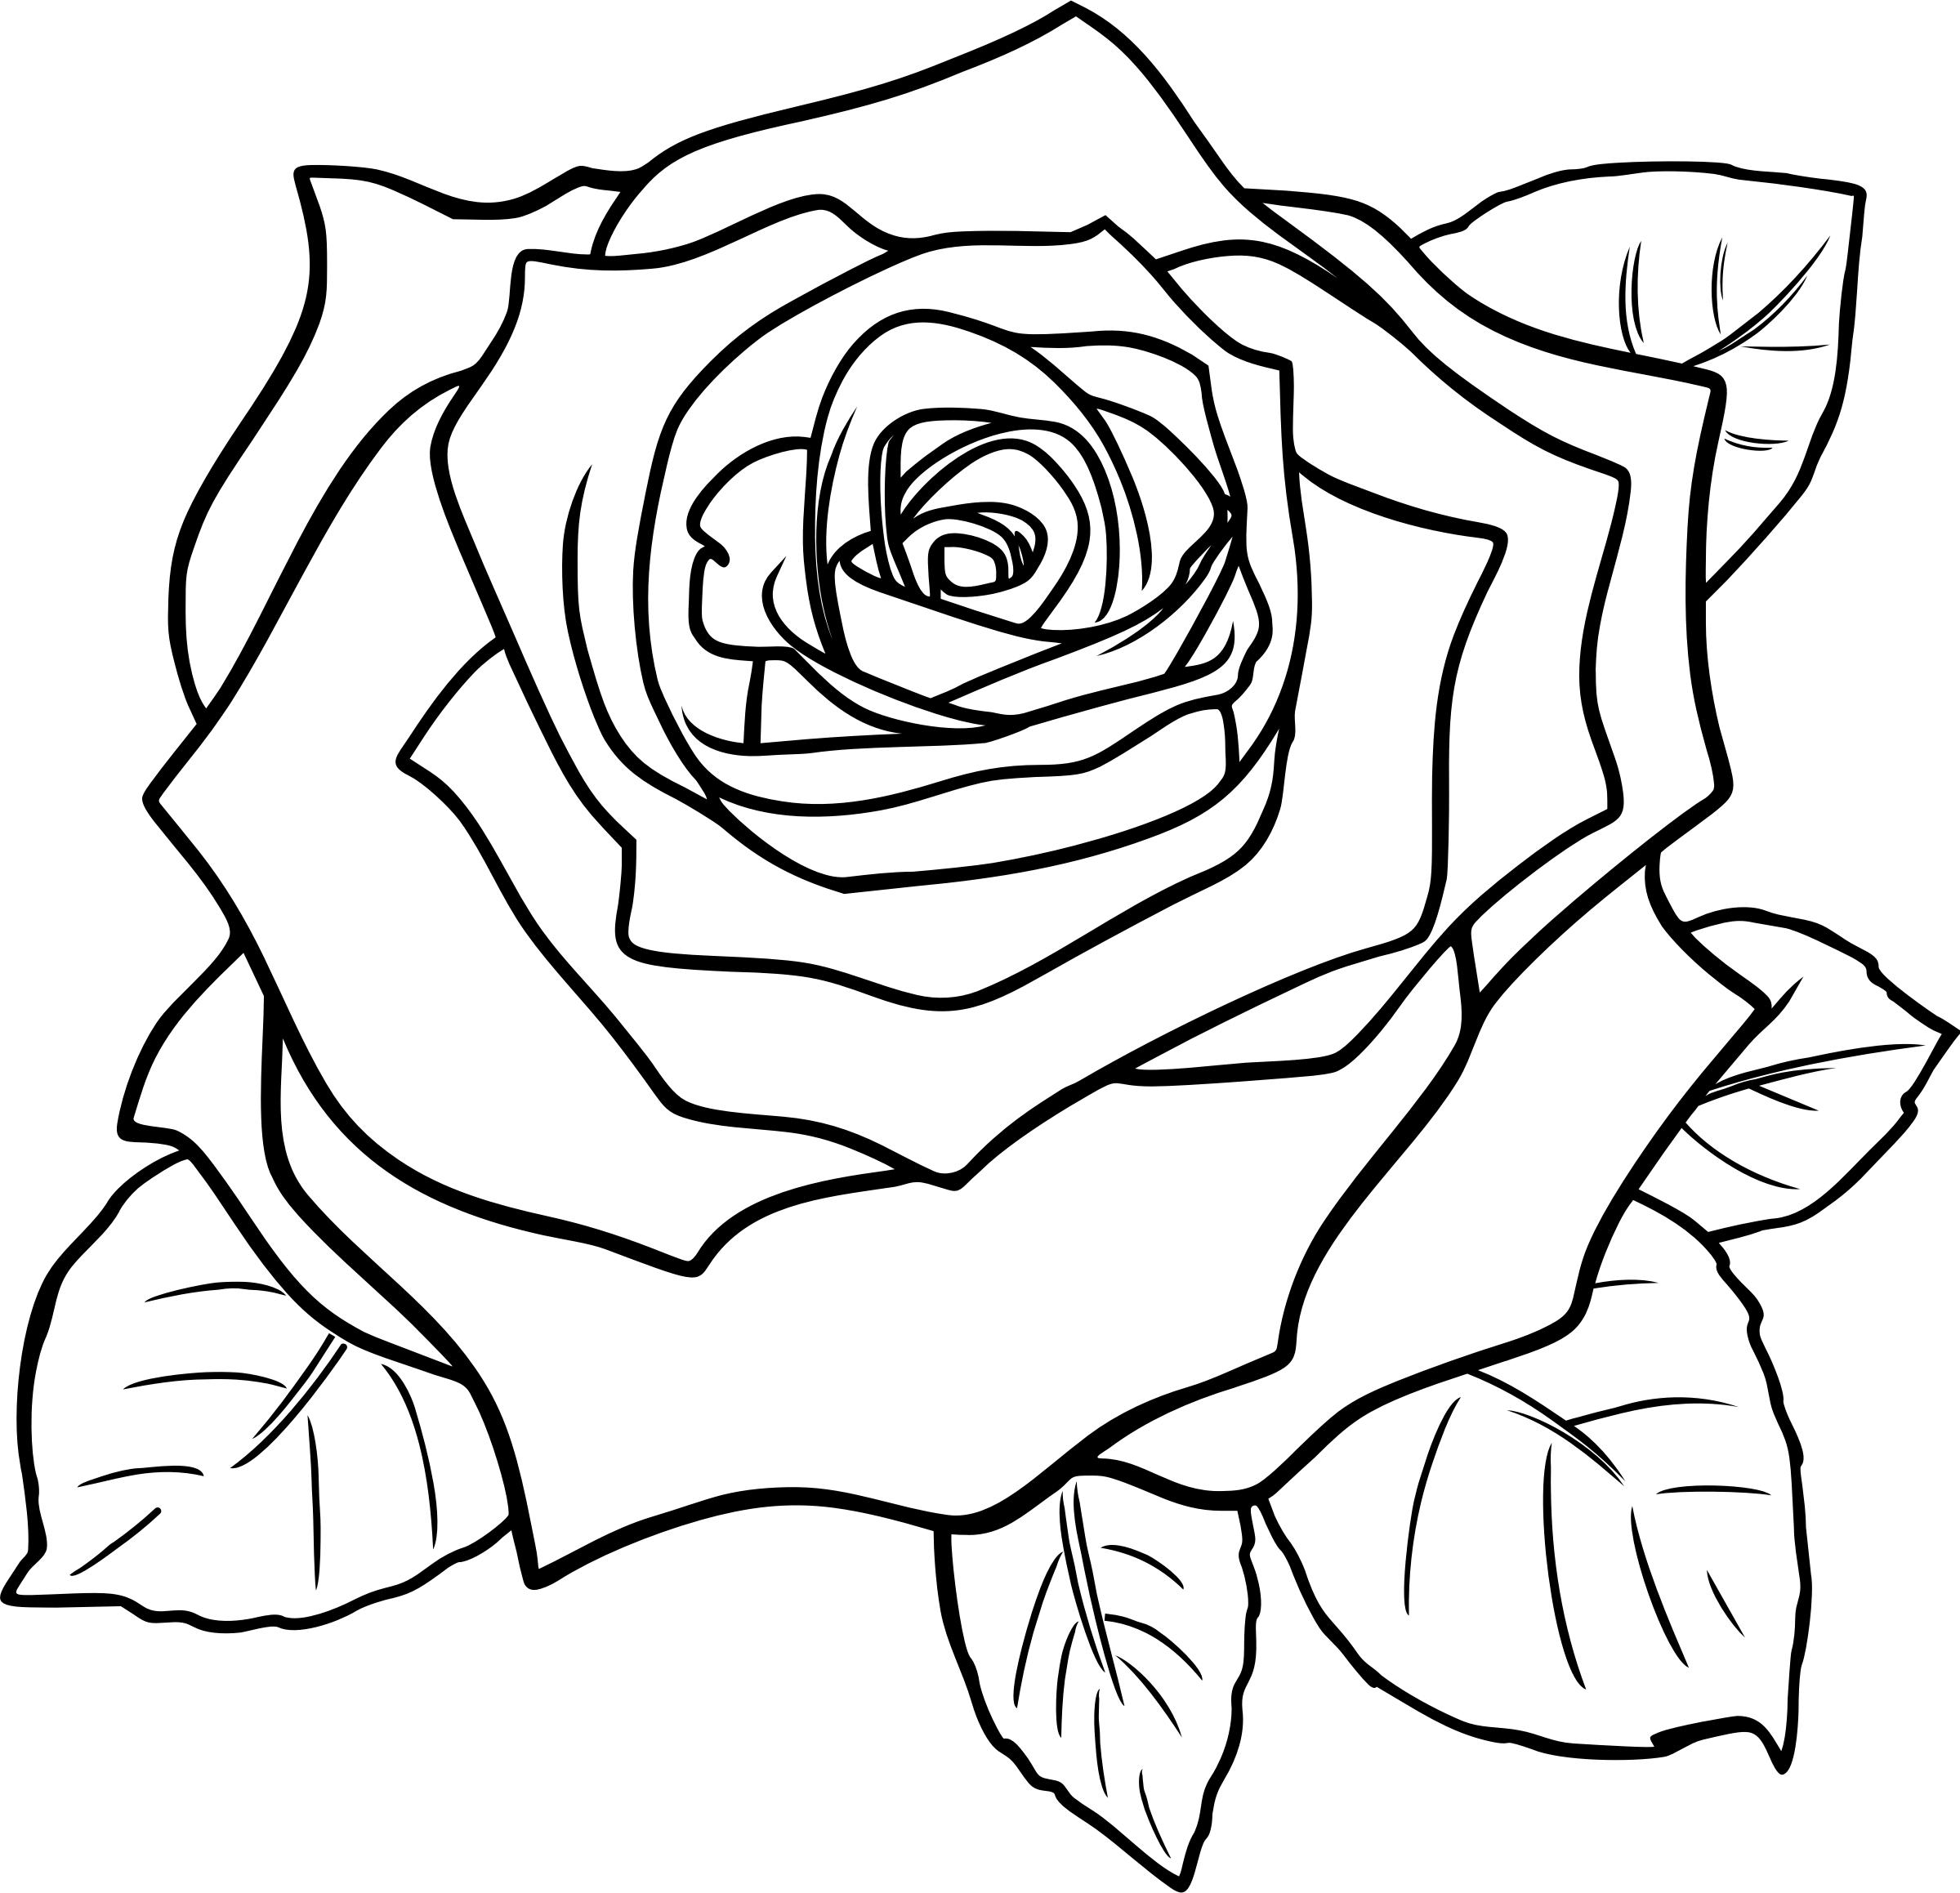 2399x2317 Free Rose Icons Png ROSE Images